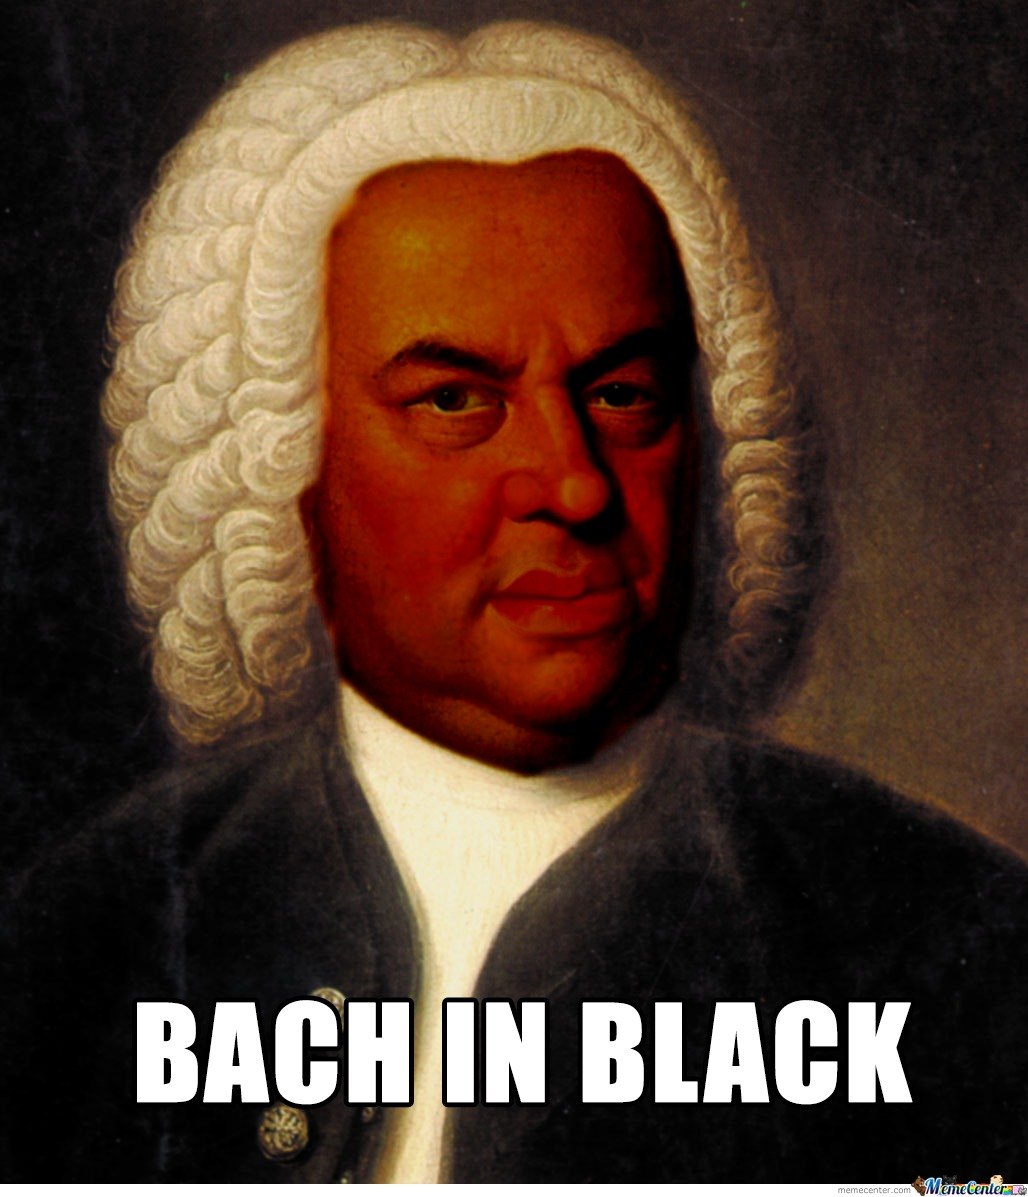 Yes I'm Bach